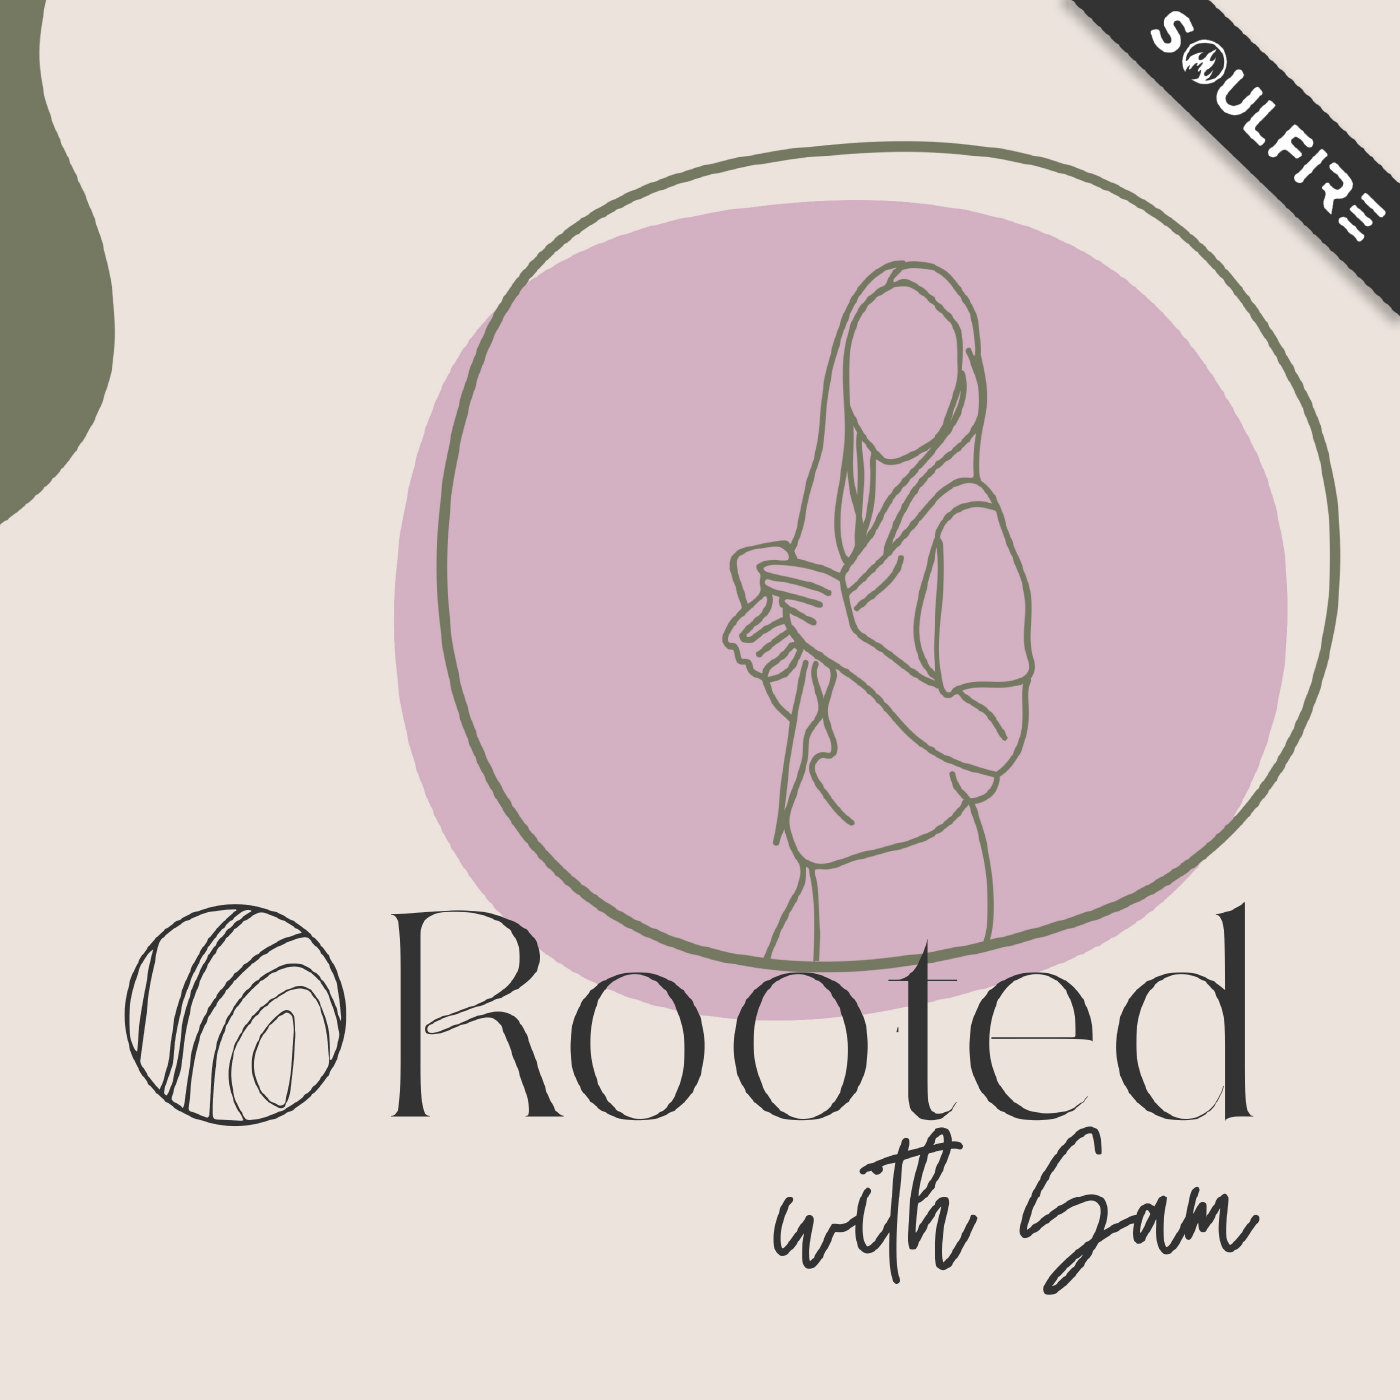 Rooted With Sam Final Cover Art